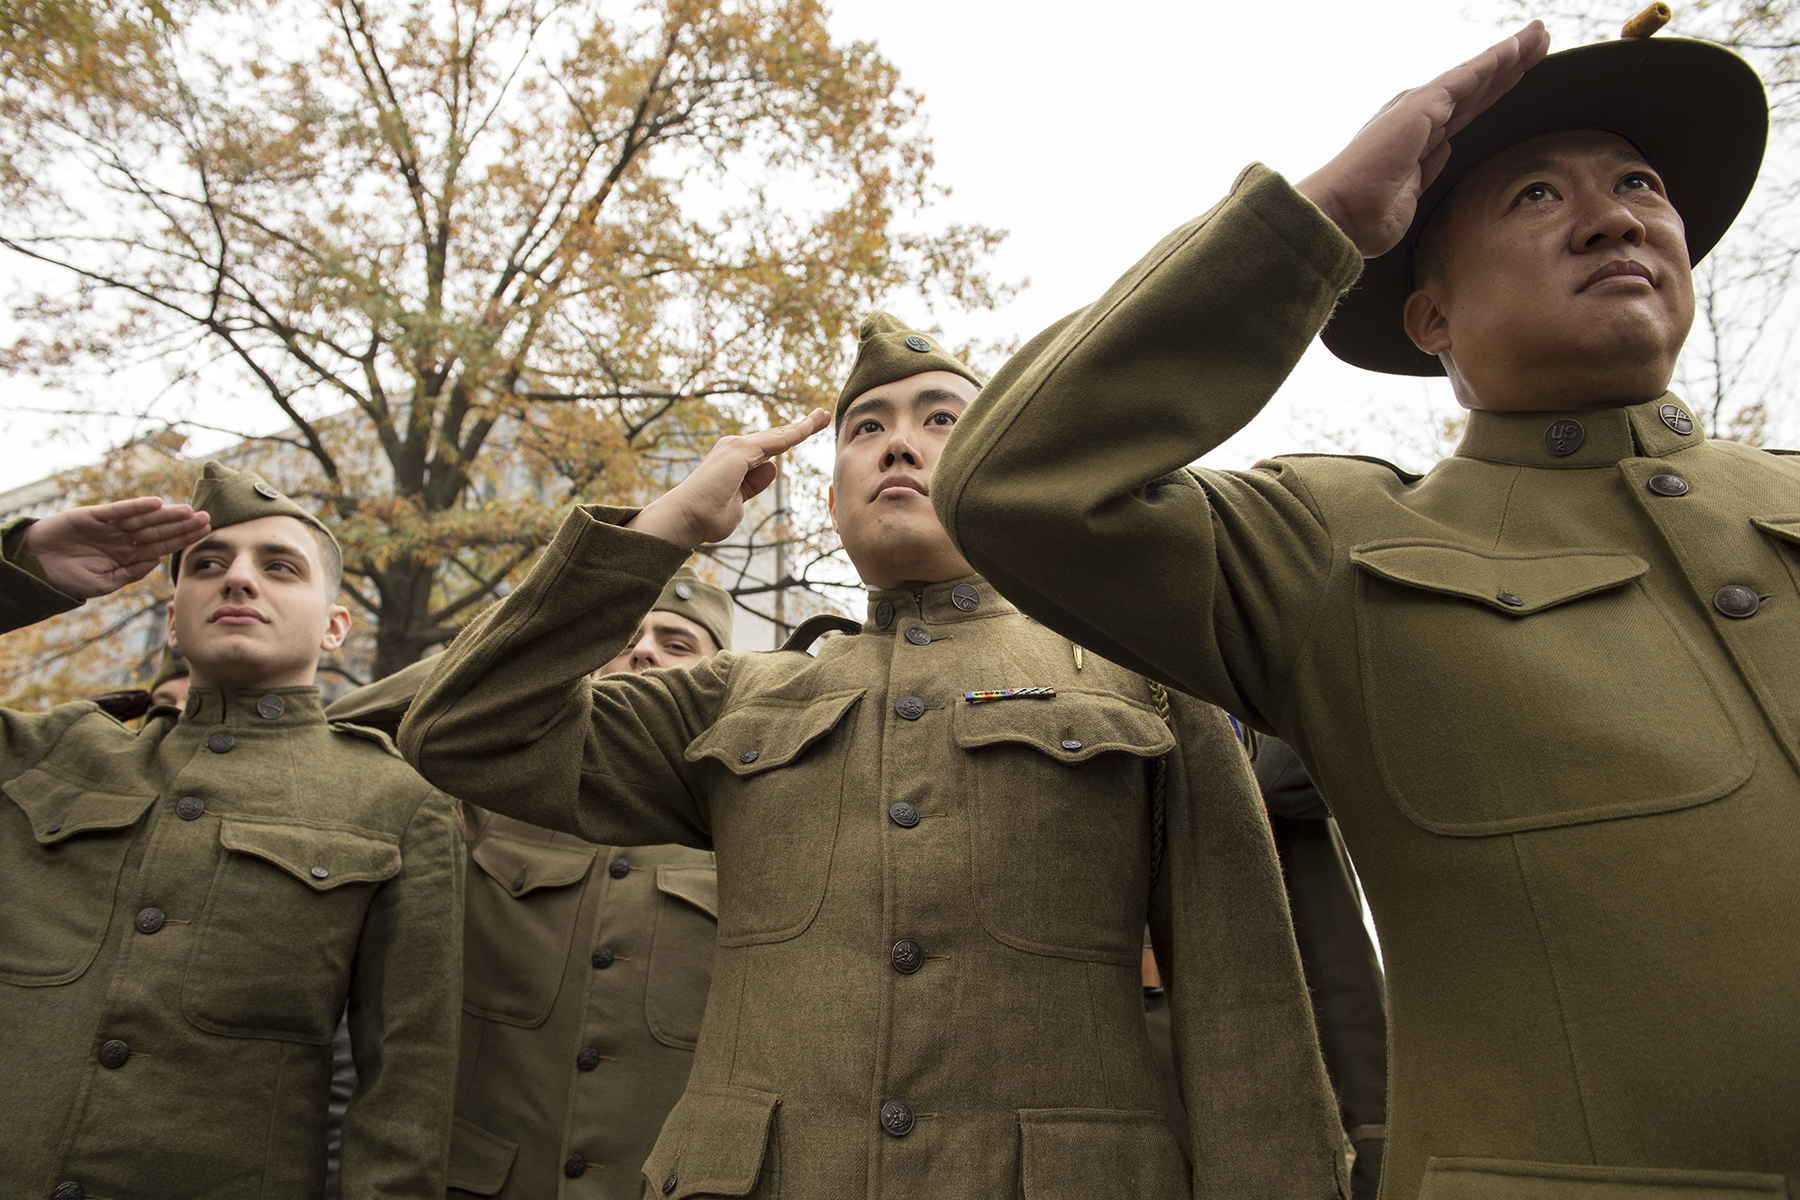 World War I re-enactors salute during the National World War I Memorial groundbreaking ceremony at Pershing Park in Washington. Construction of the memorial is expected to be completed in a year. (EJ Hersom/Department of Defense)